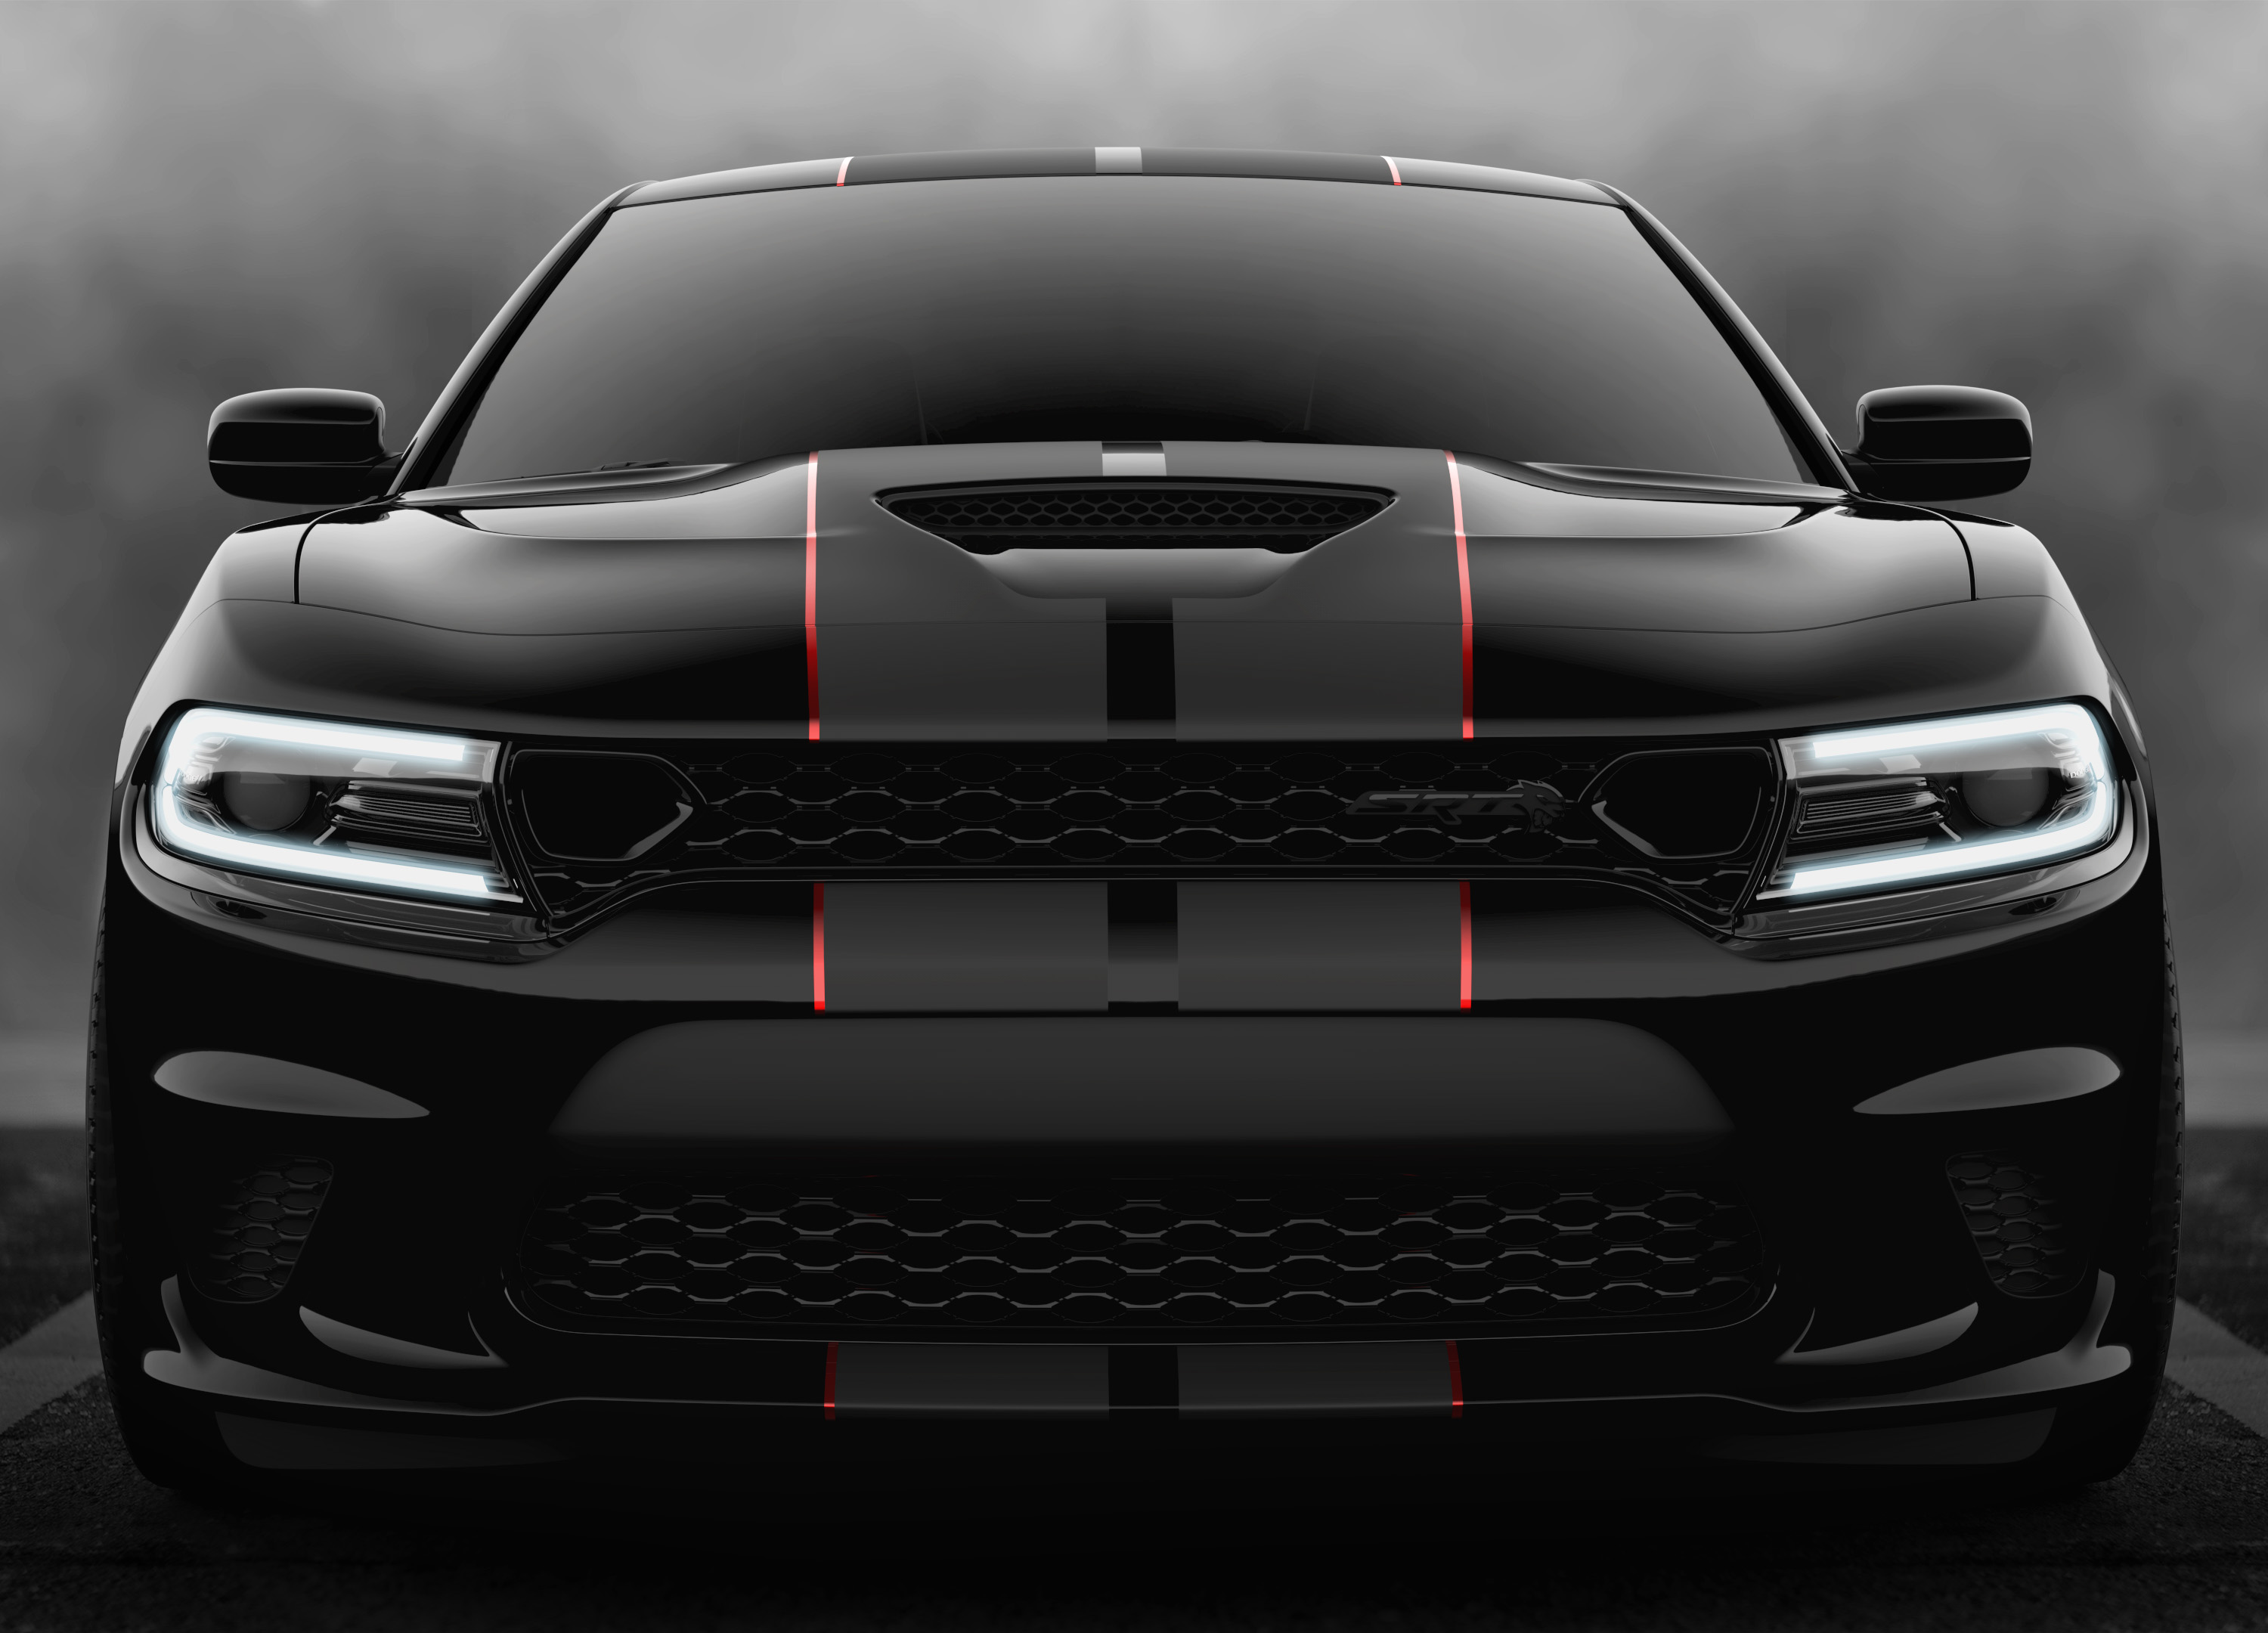 2019 Dodge Charger Srt Hellcat Lineup Debuts Blacked Out